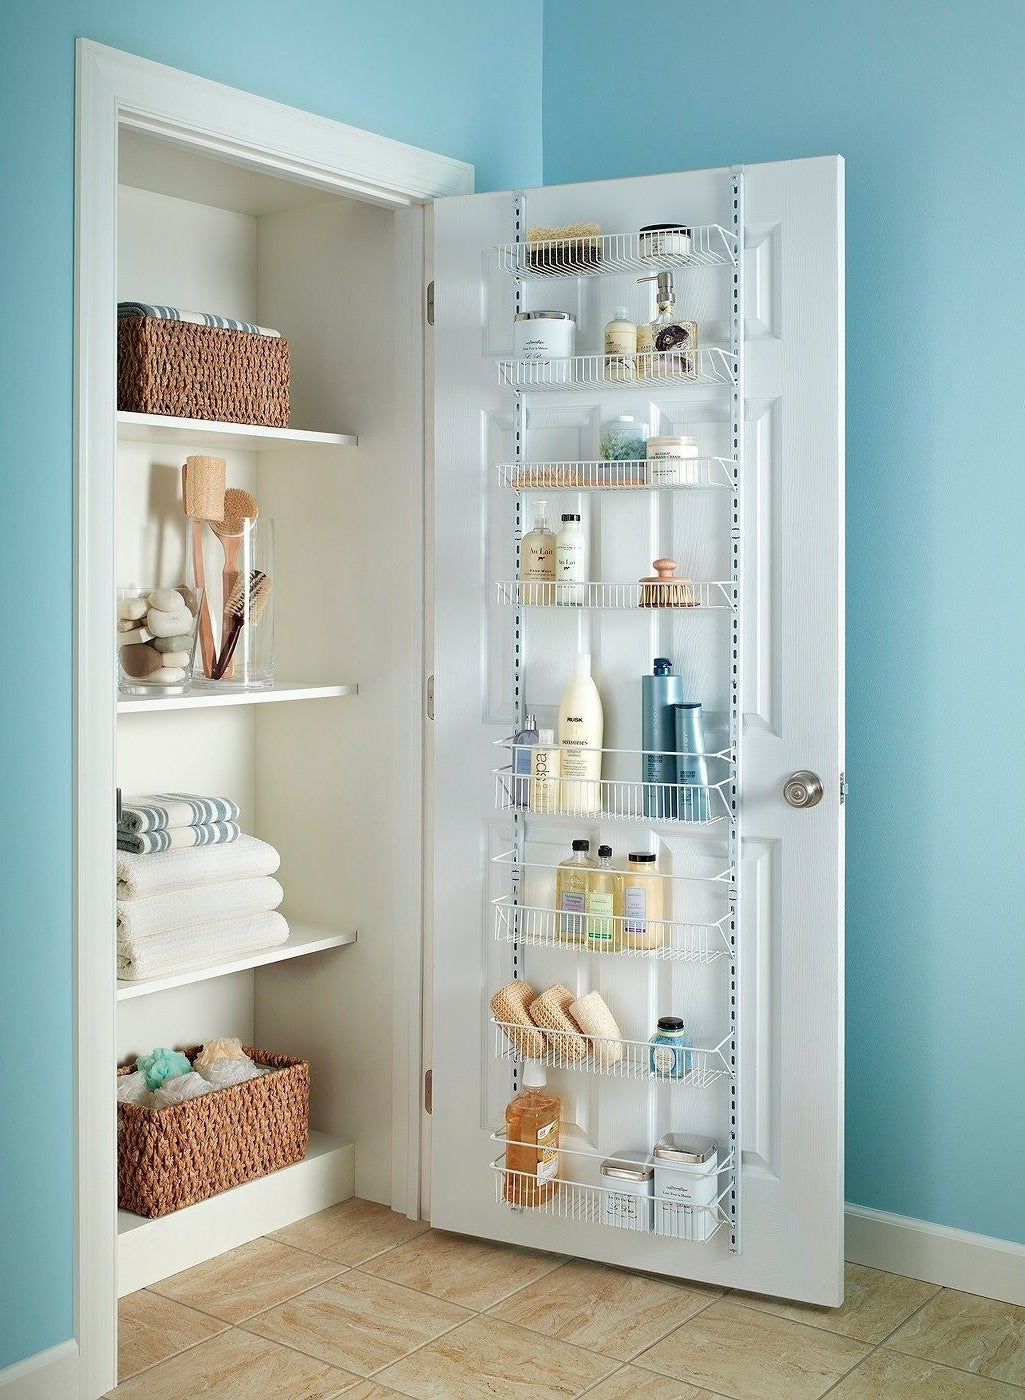 eight-shelf wire rack on the back of a bathroom door, storing all sorts of soaps, sponges, and more